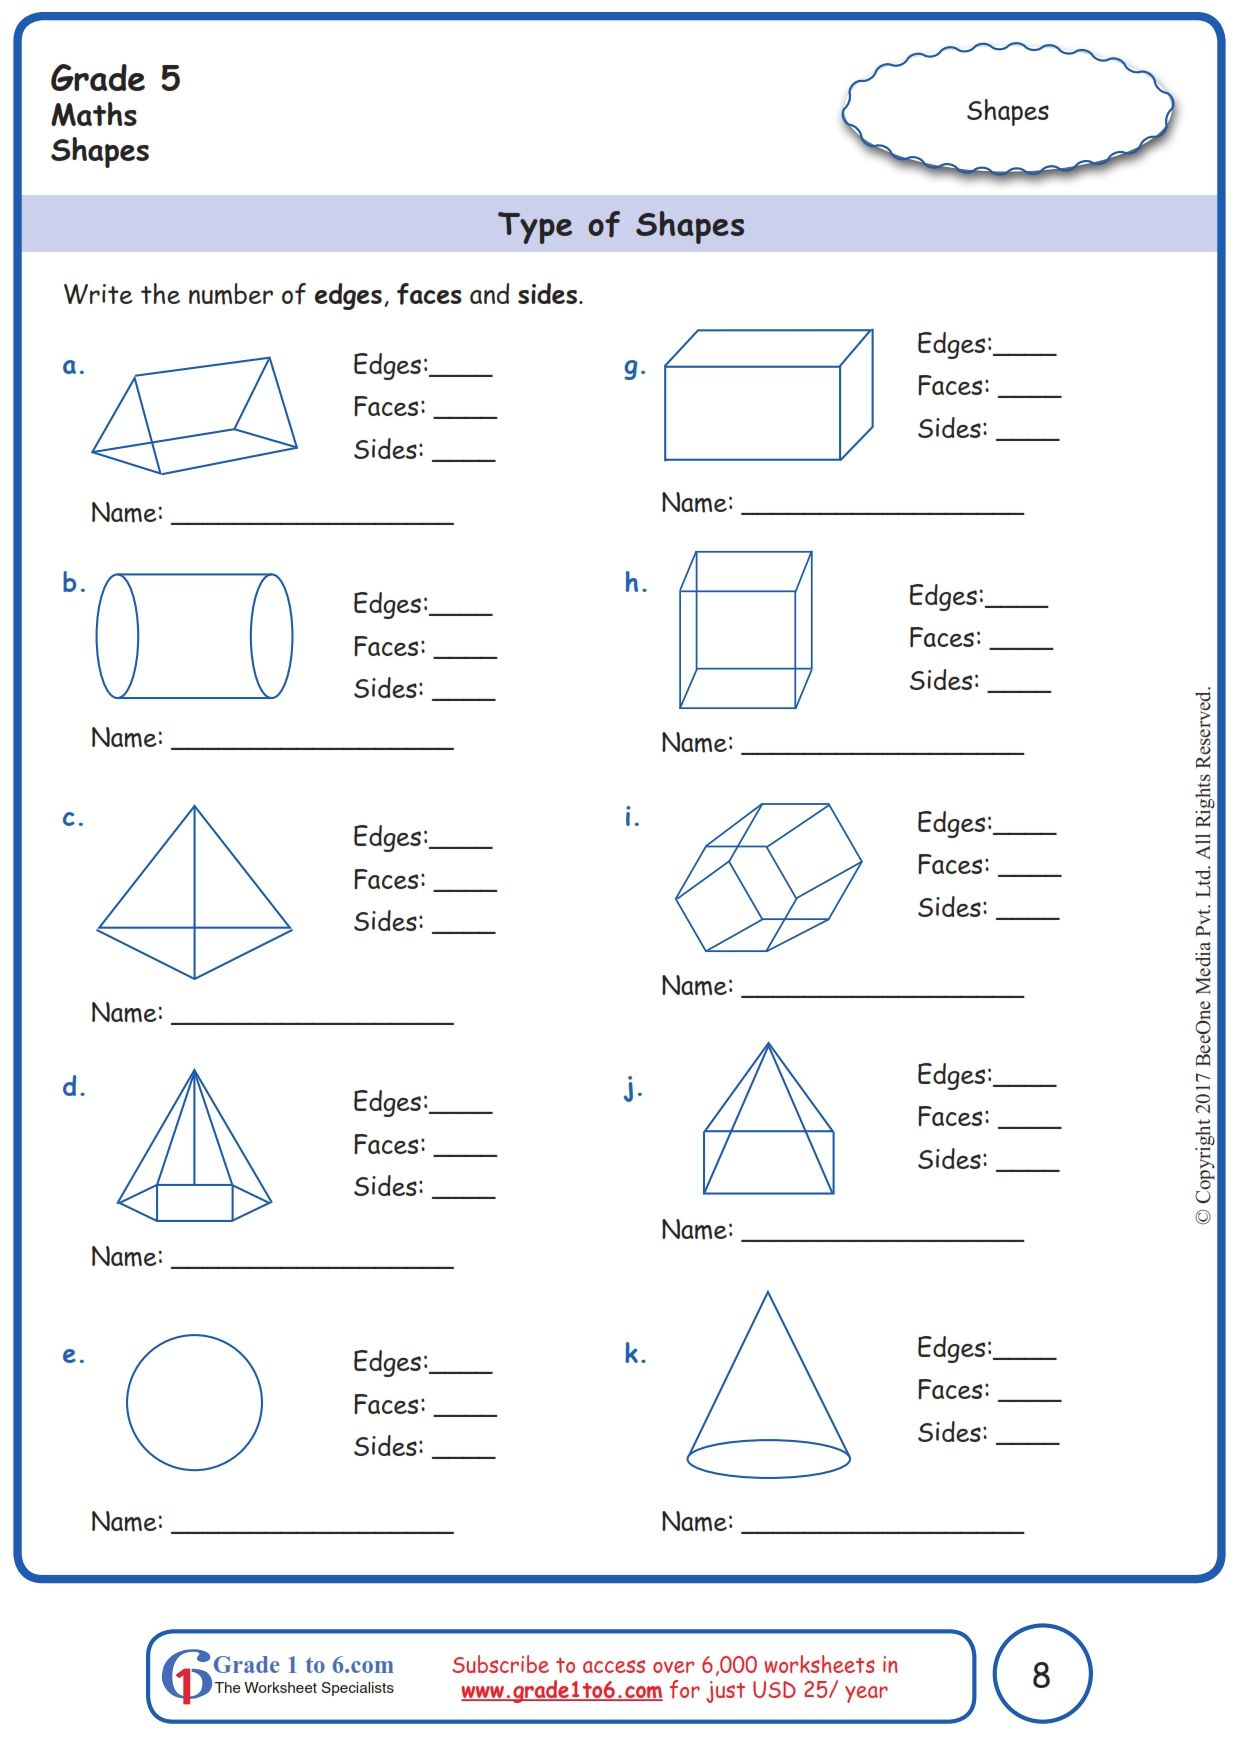 Worksheet Grade 5 Math Type Of Shapes In